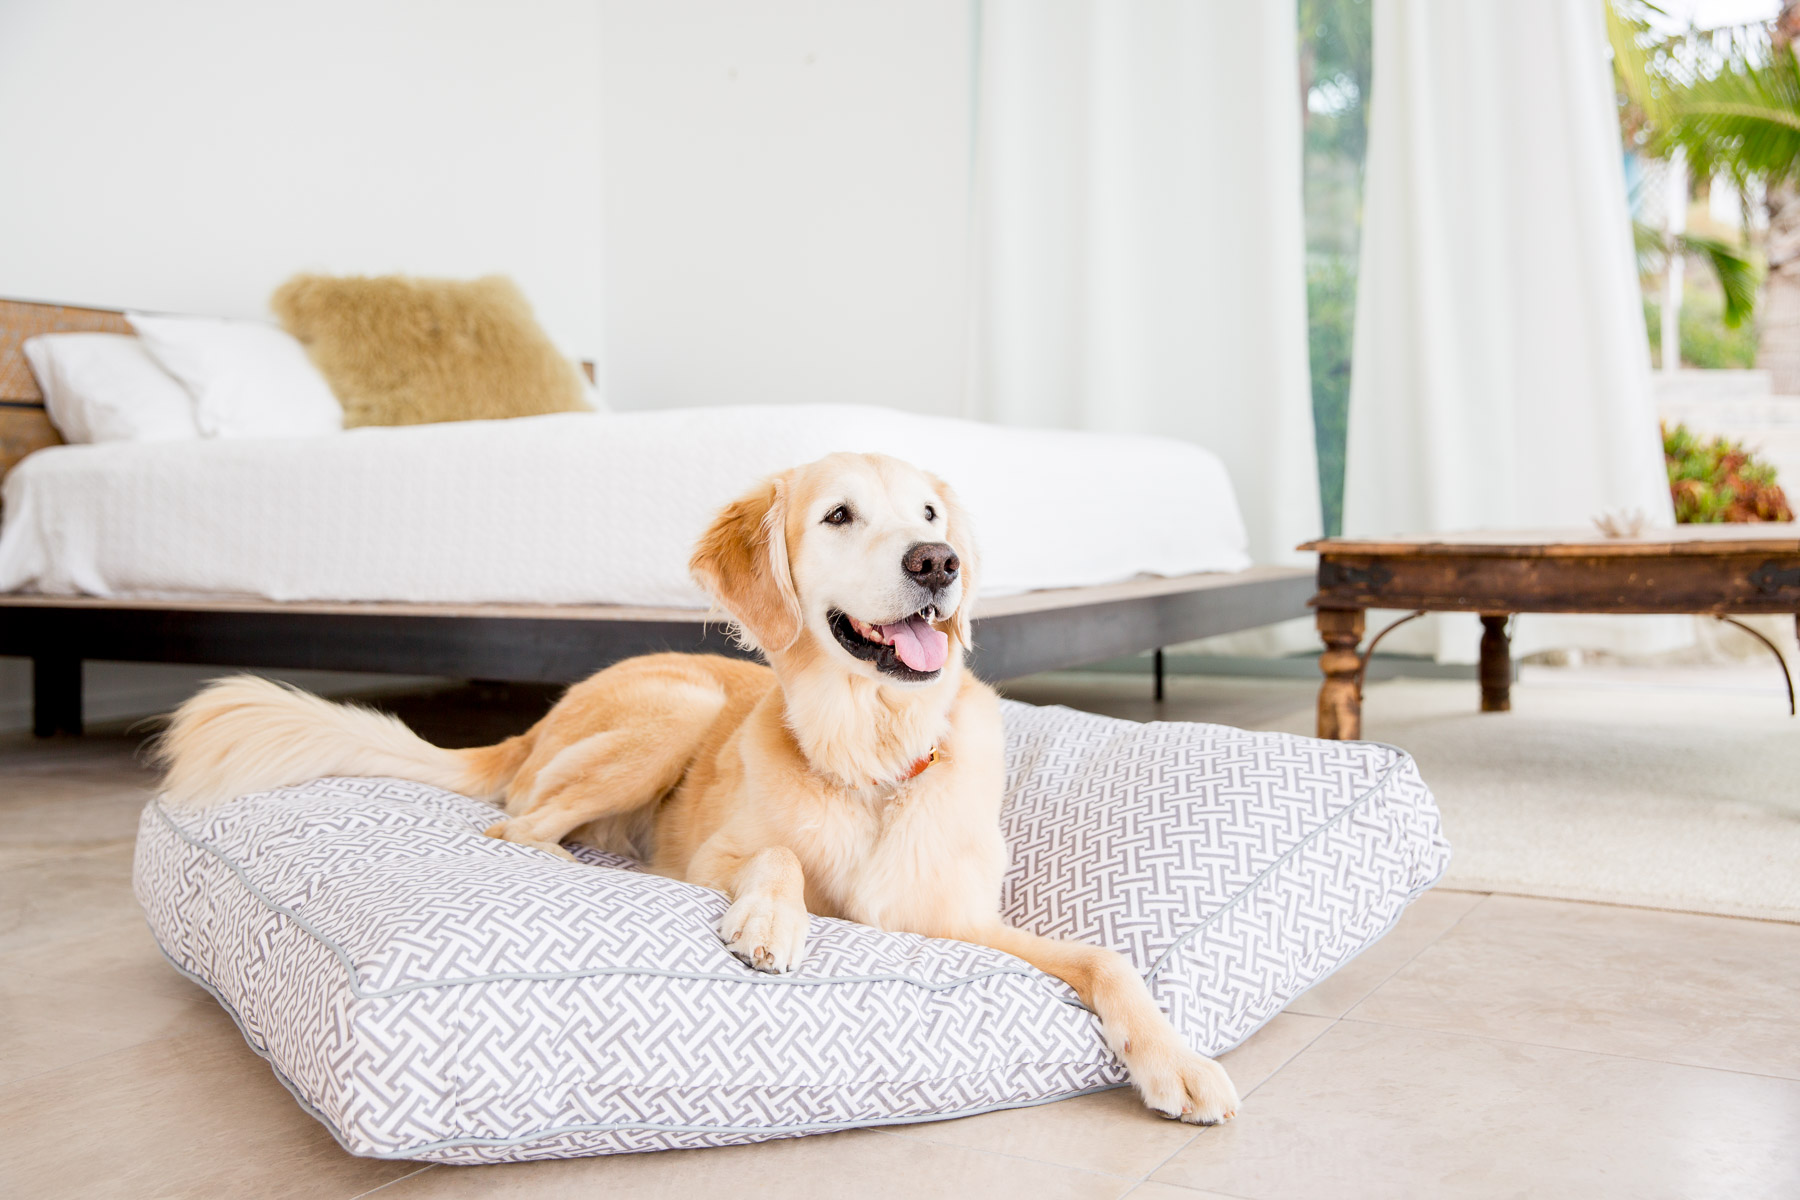 Golden Retriever posing on a Jax & Bones dog bed during a commercial photoshoot.